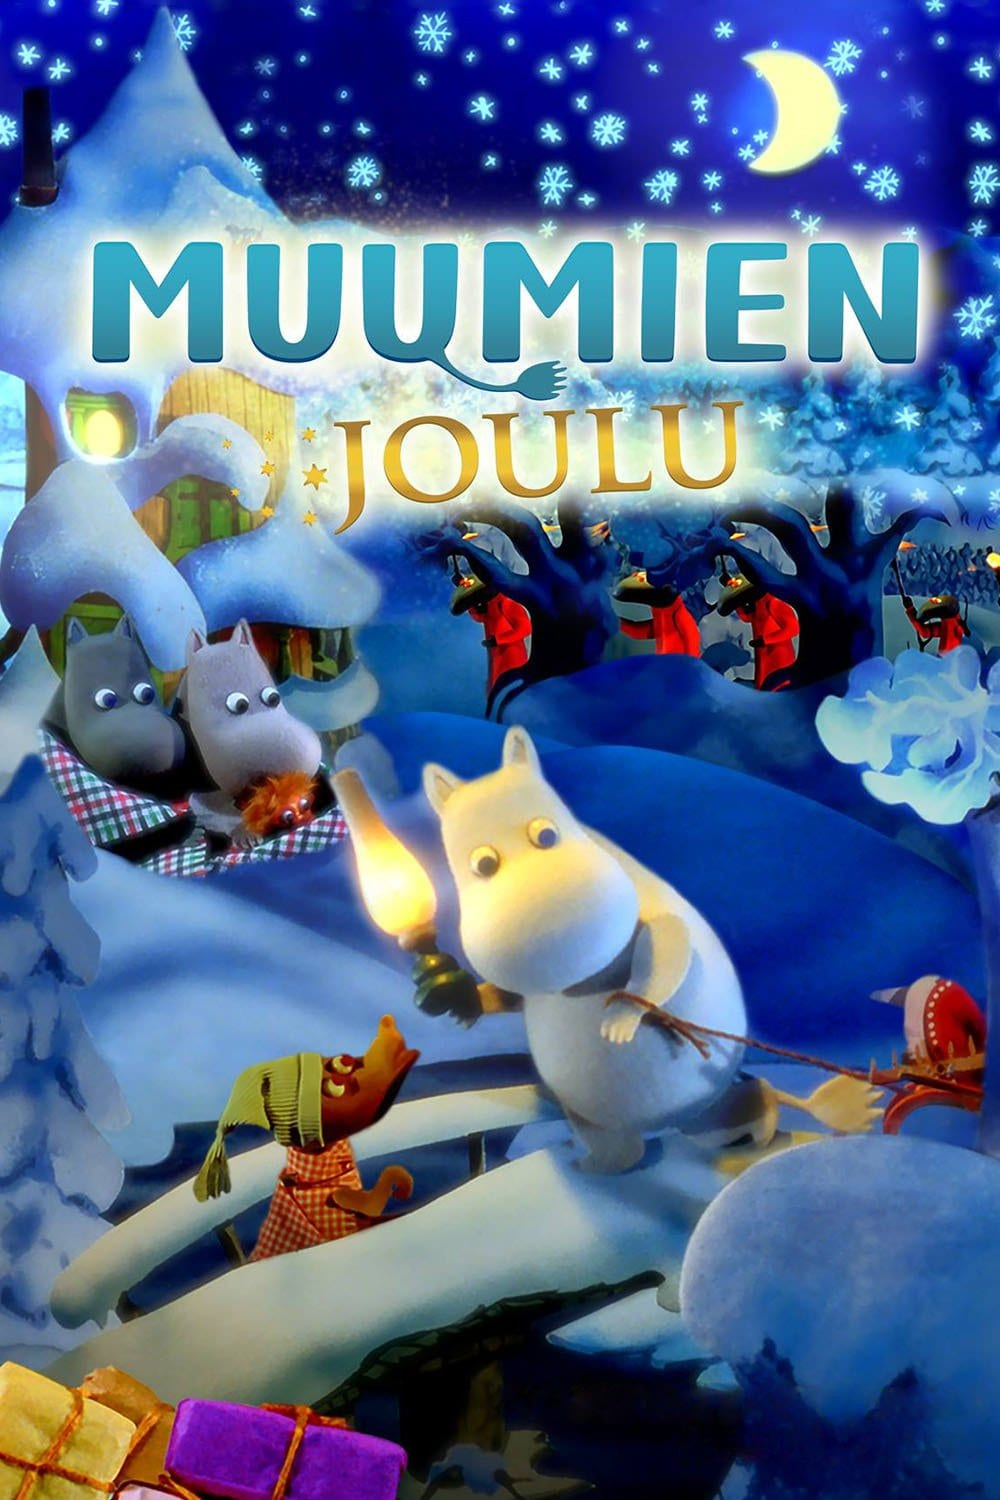 Regarder Muumien joulu en streaming gratuit